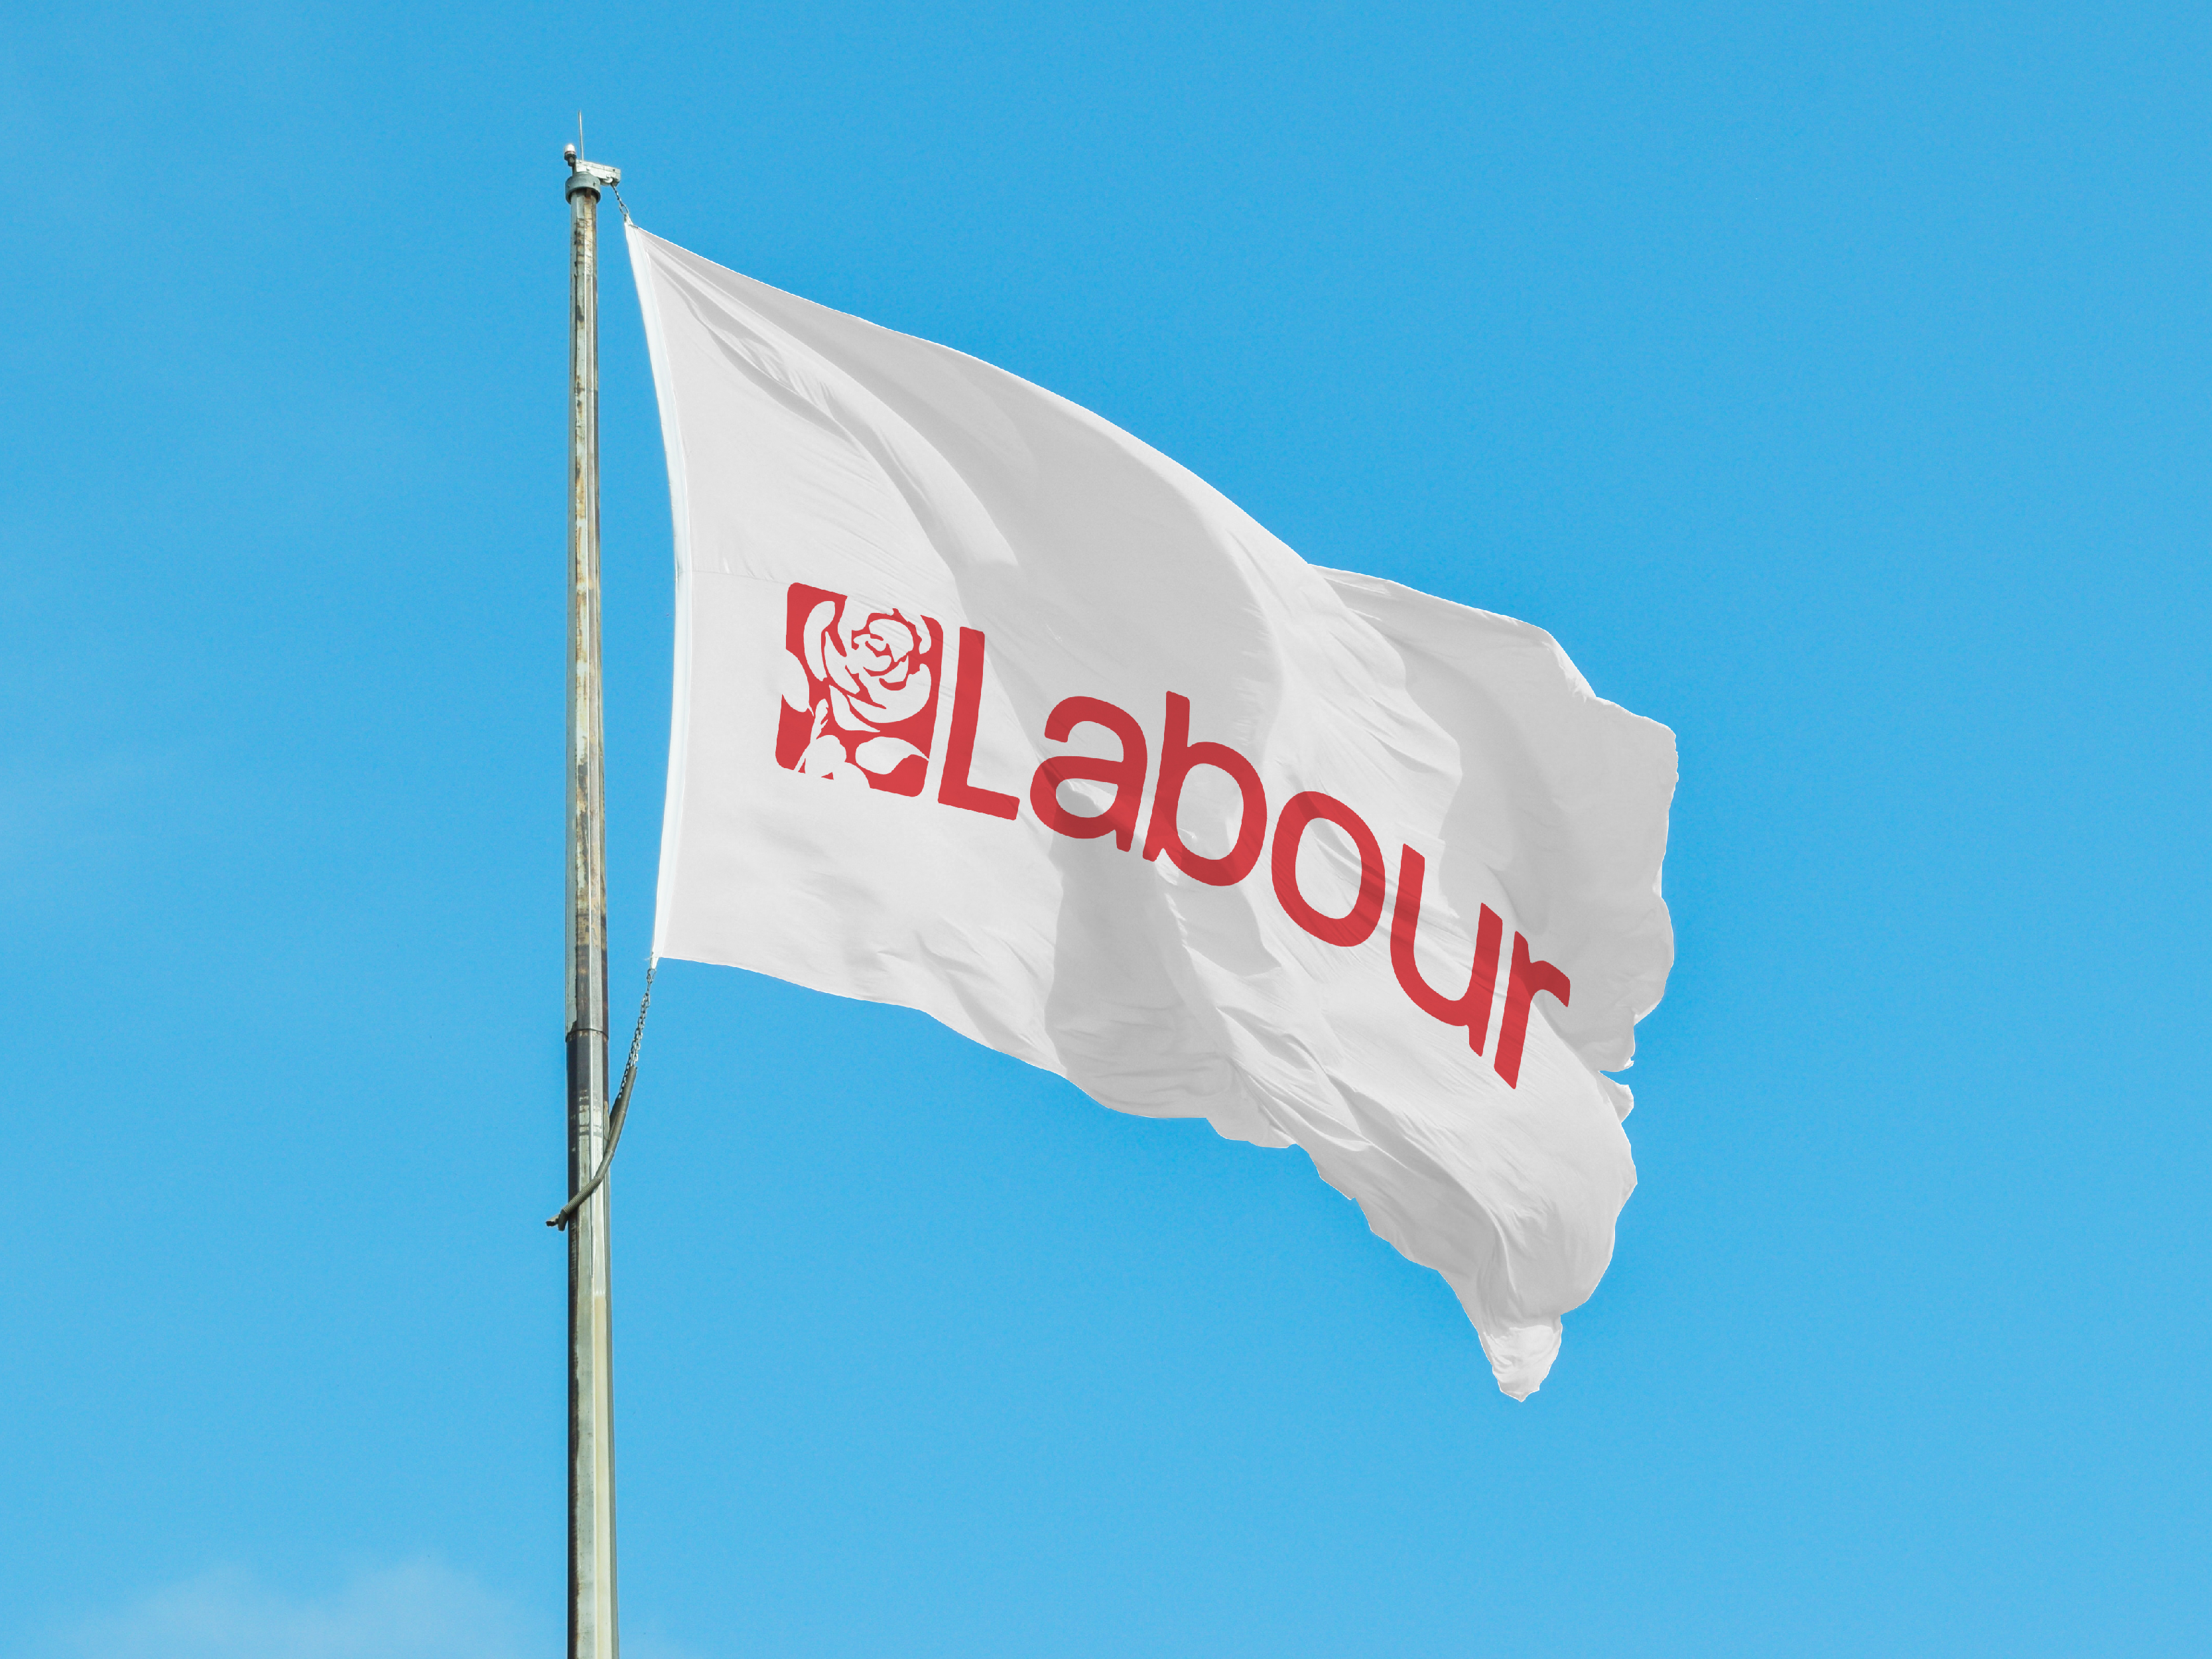 Labour Party flag waving in the wind, infront of a bright blue sky